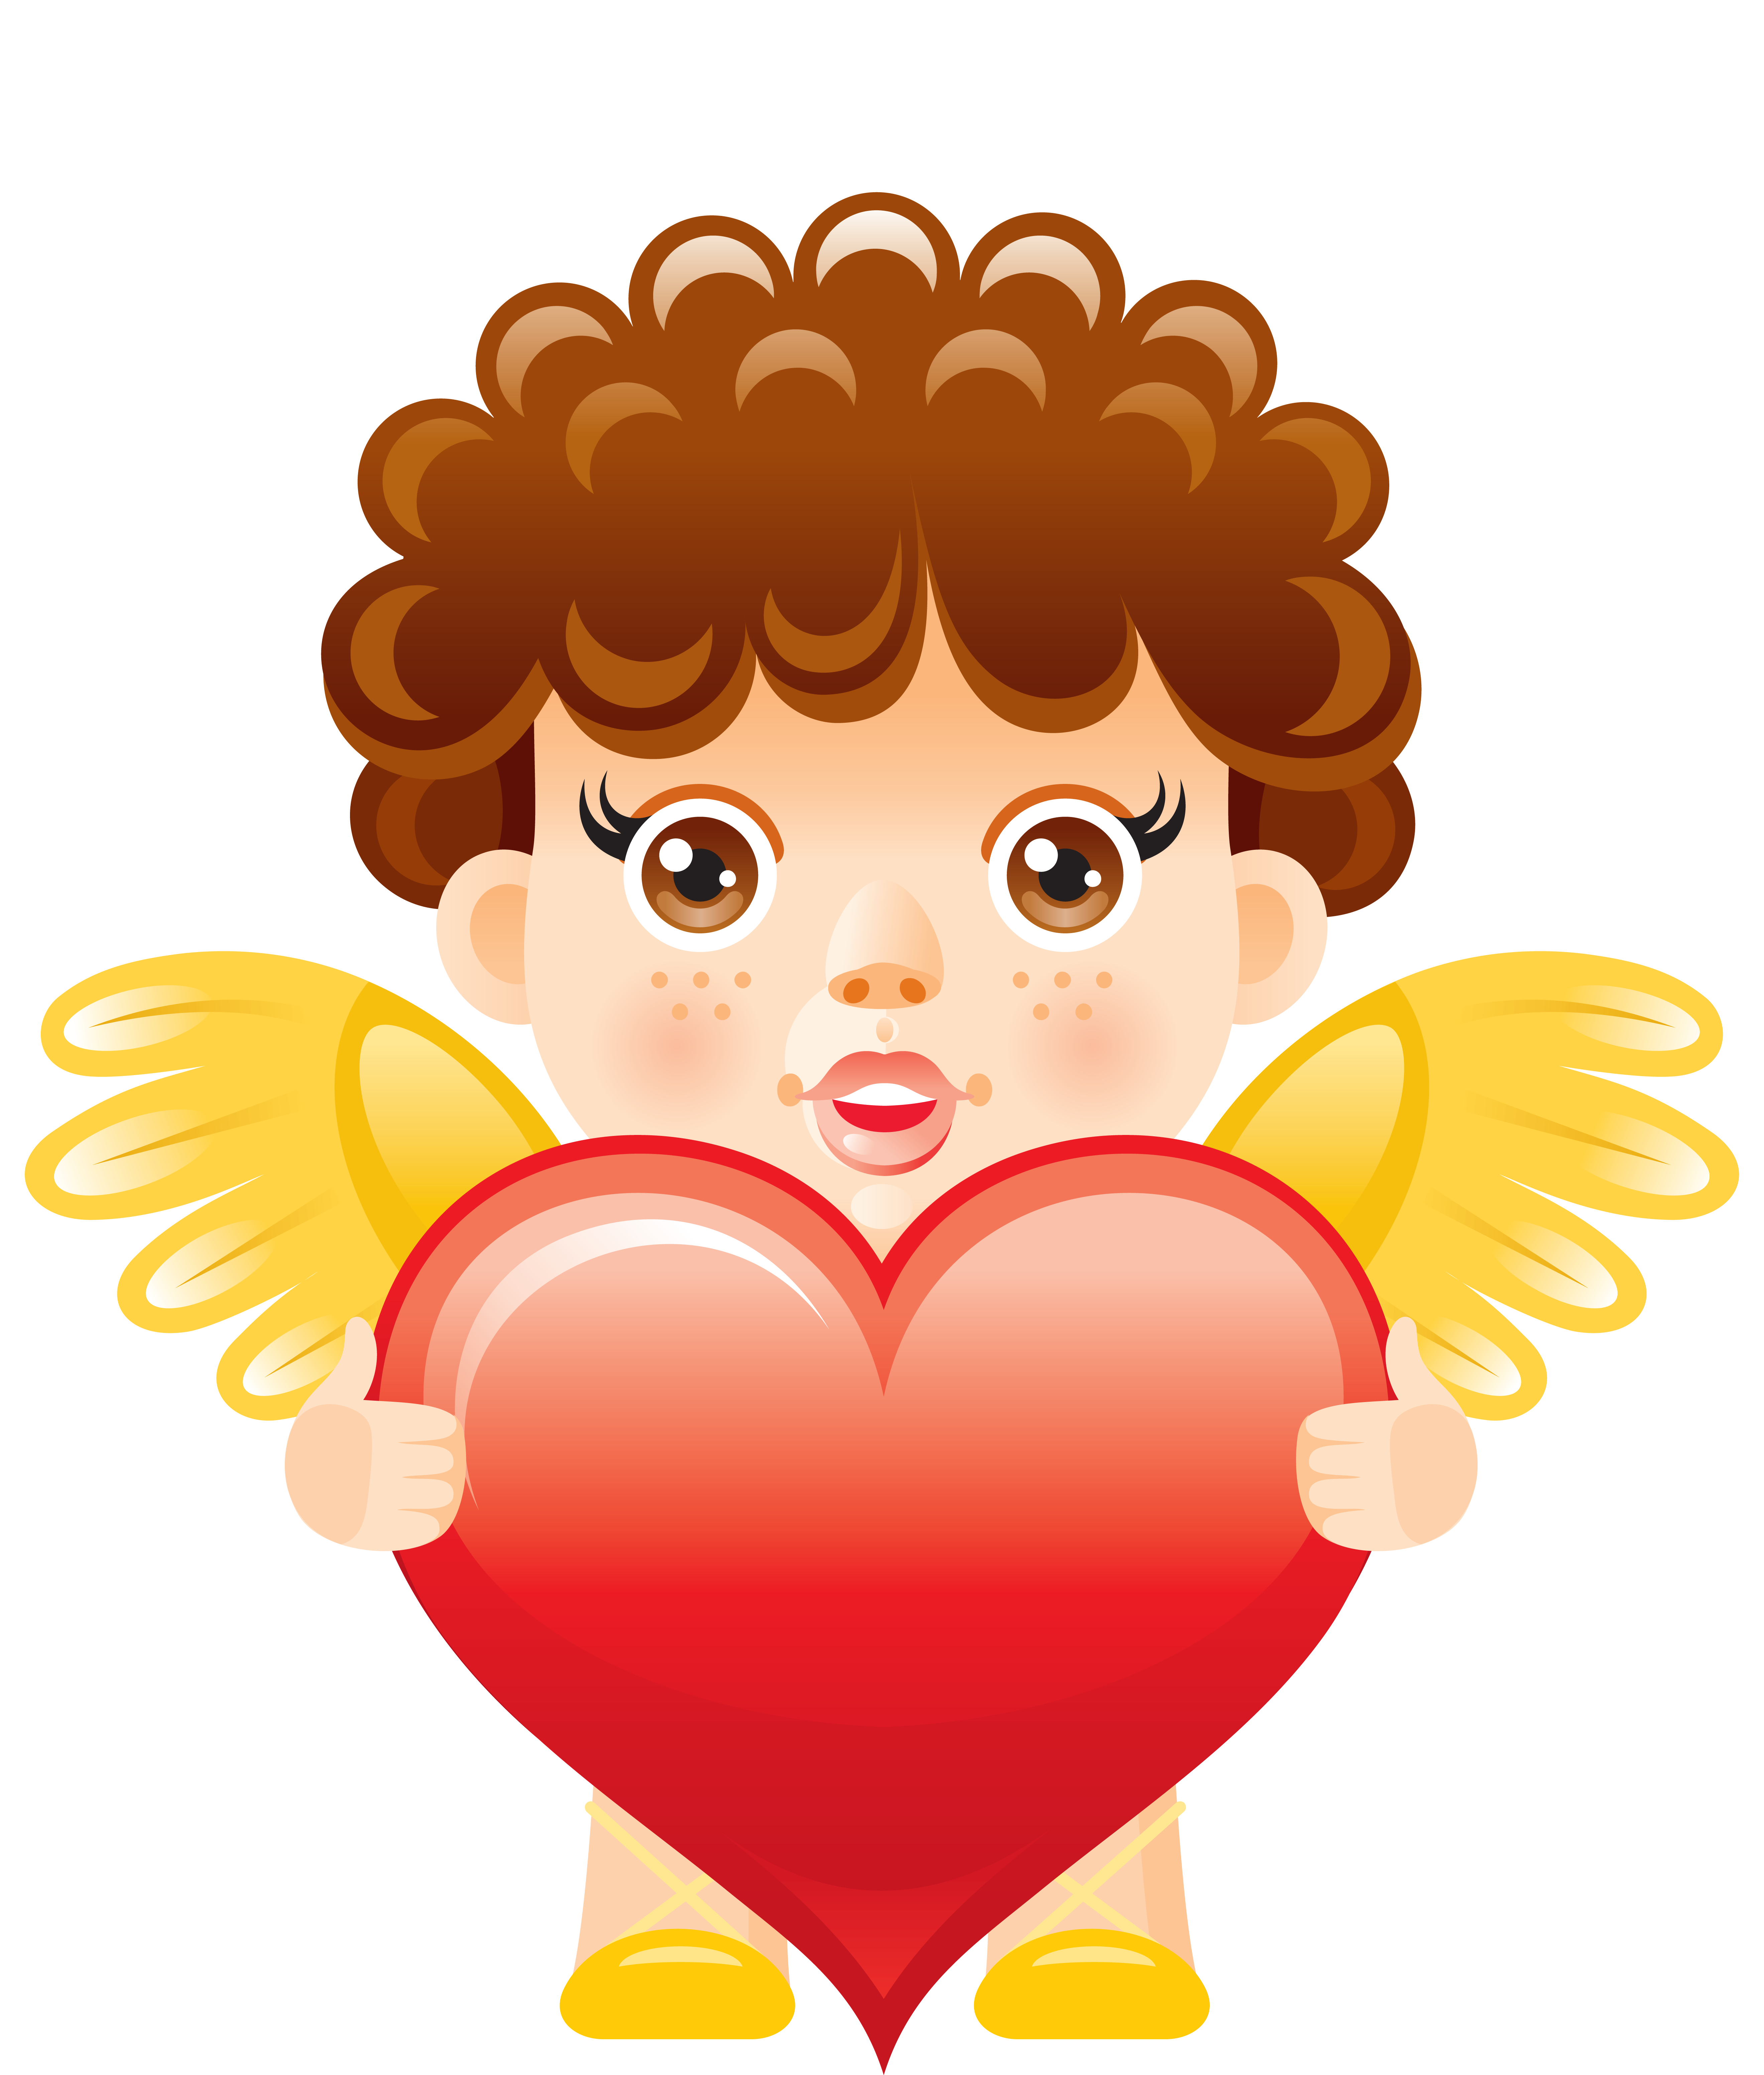 vector black and white download Angel clipart heart. With free png picture.